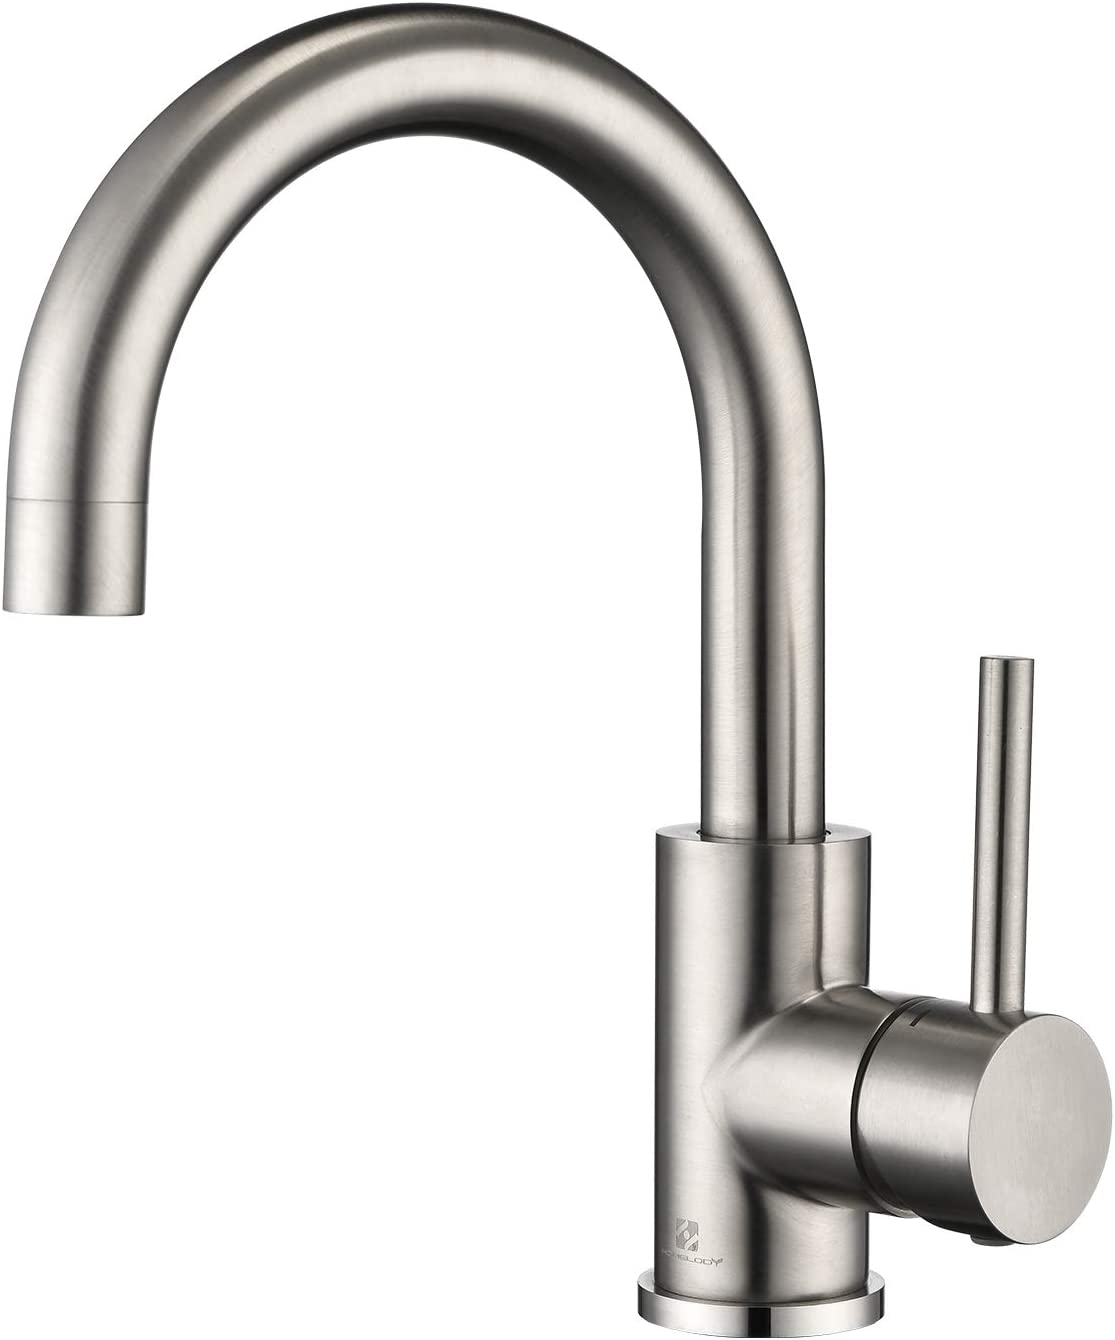 Bar favorite Sink Faucet Max 84% OFF HOMELODY Stainless Fau Bathroom Steel Farmhouse